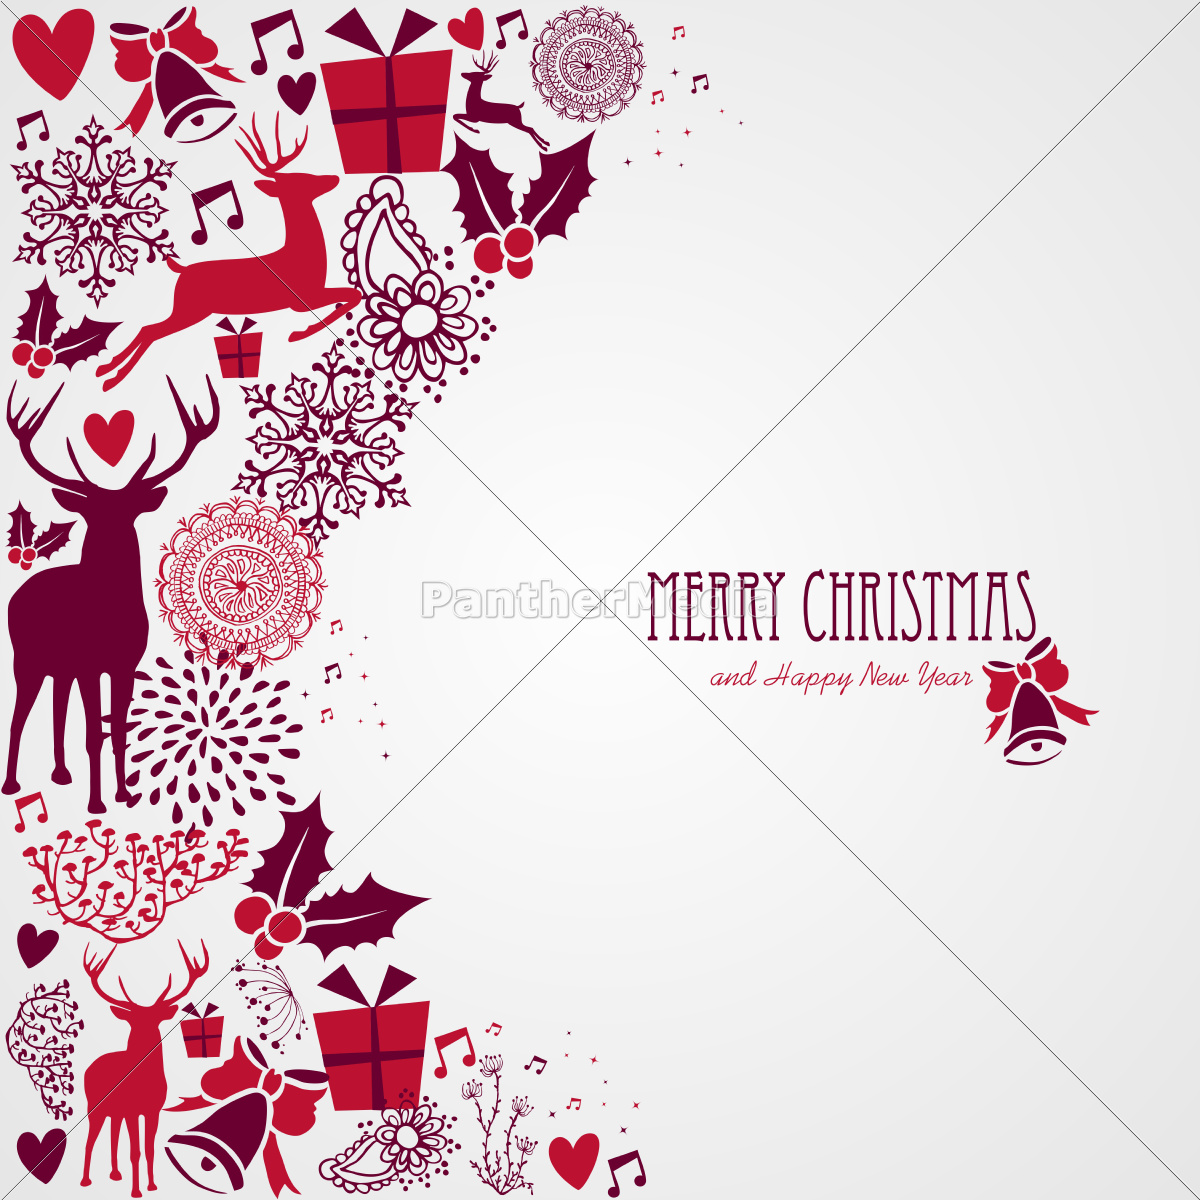 merry, christmas, text, and, vintage, elements - 10113759